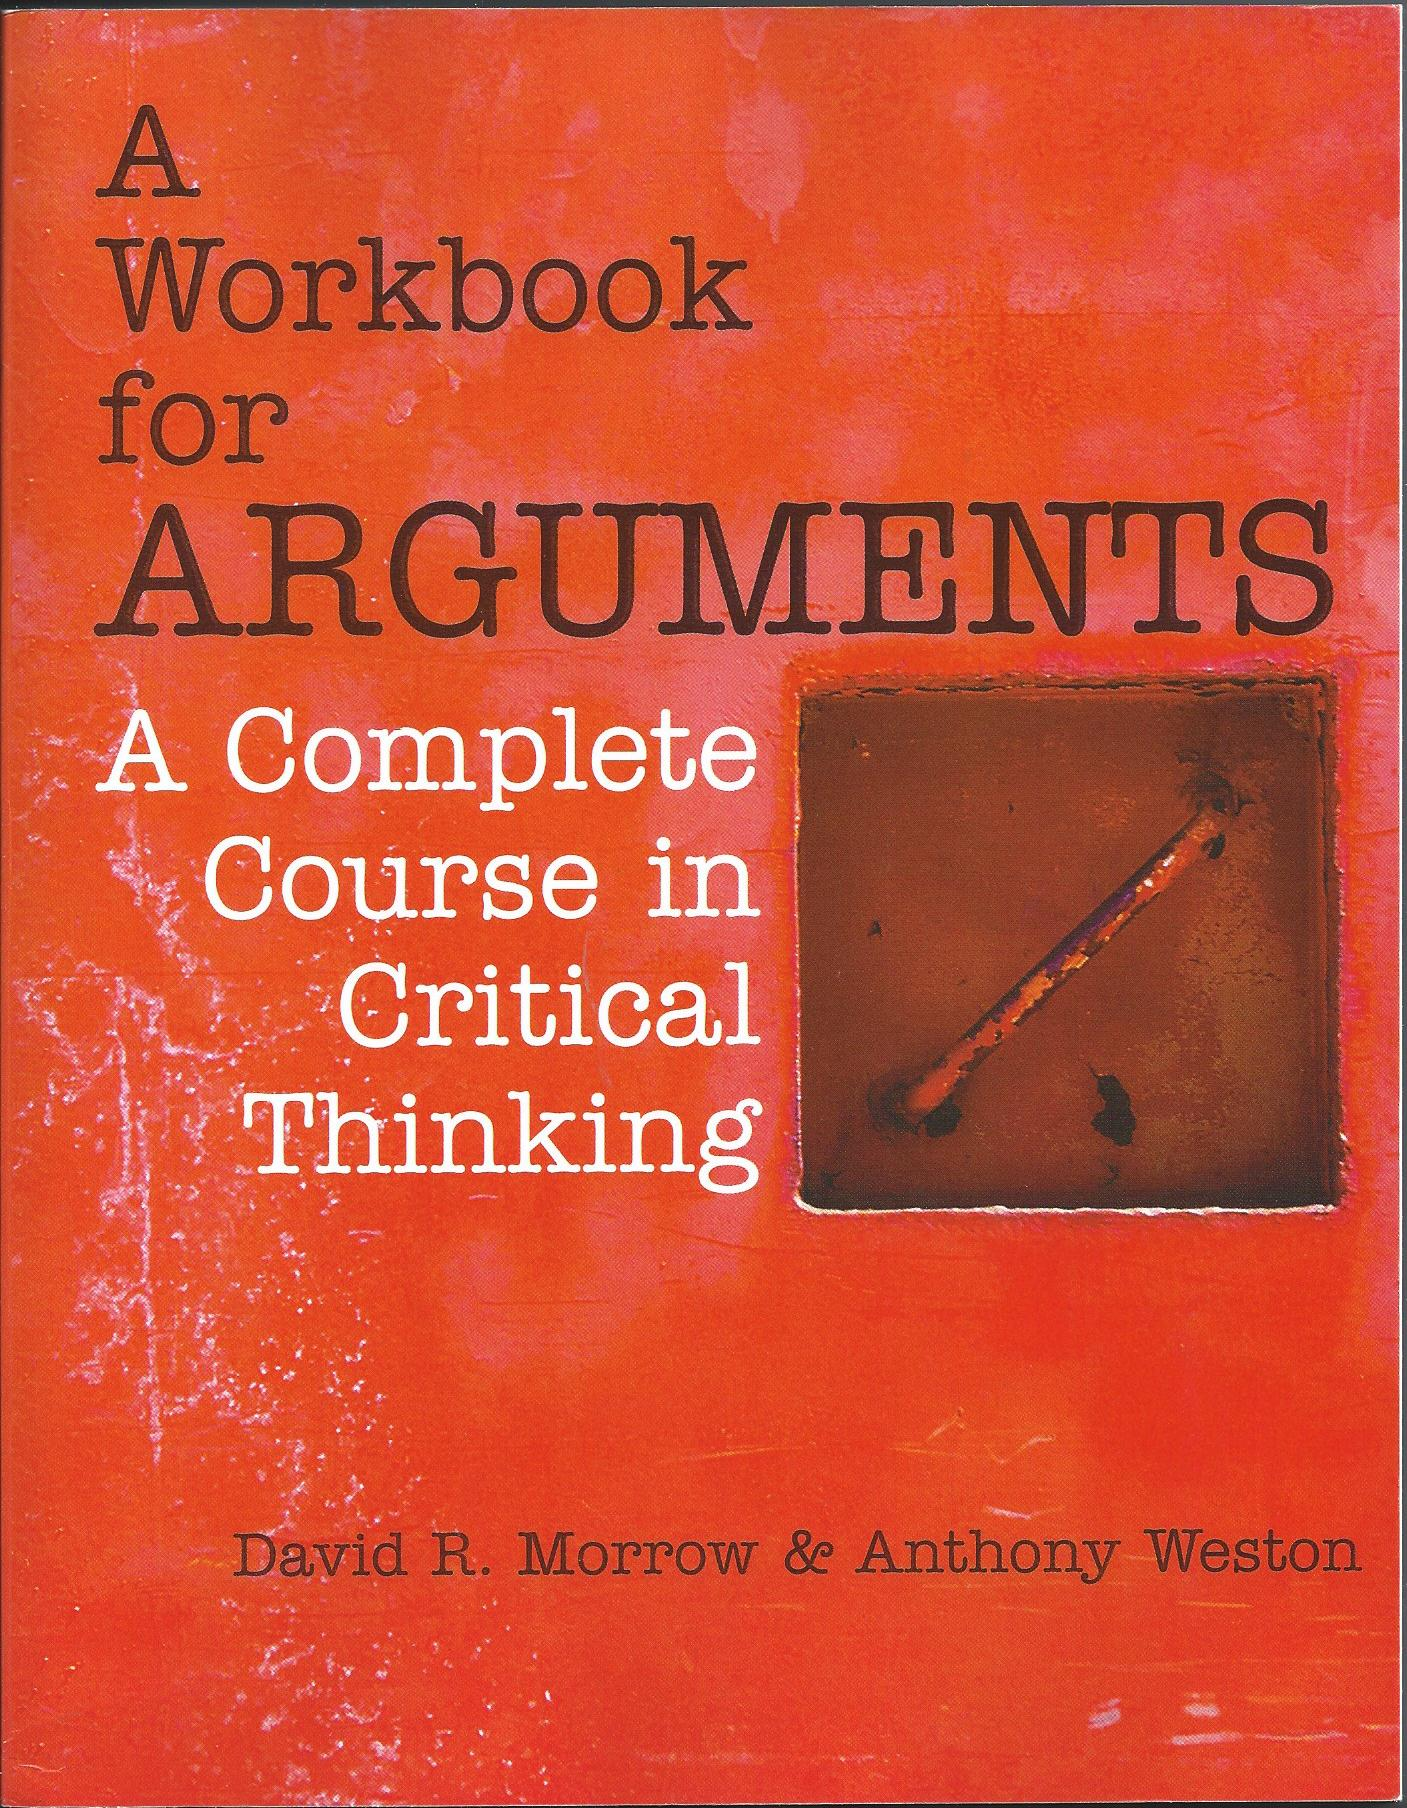 Workbook for Arguments